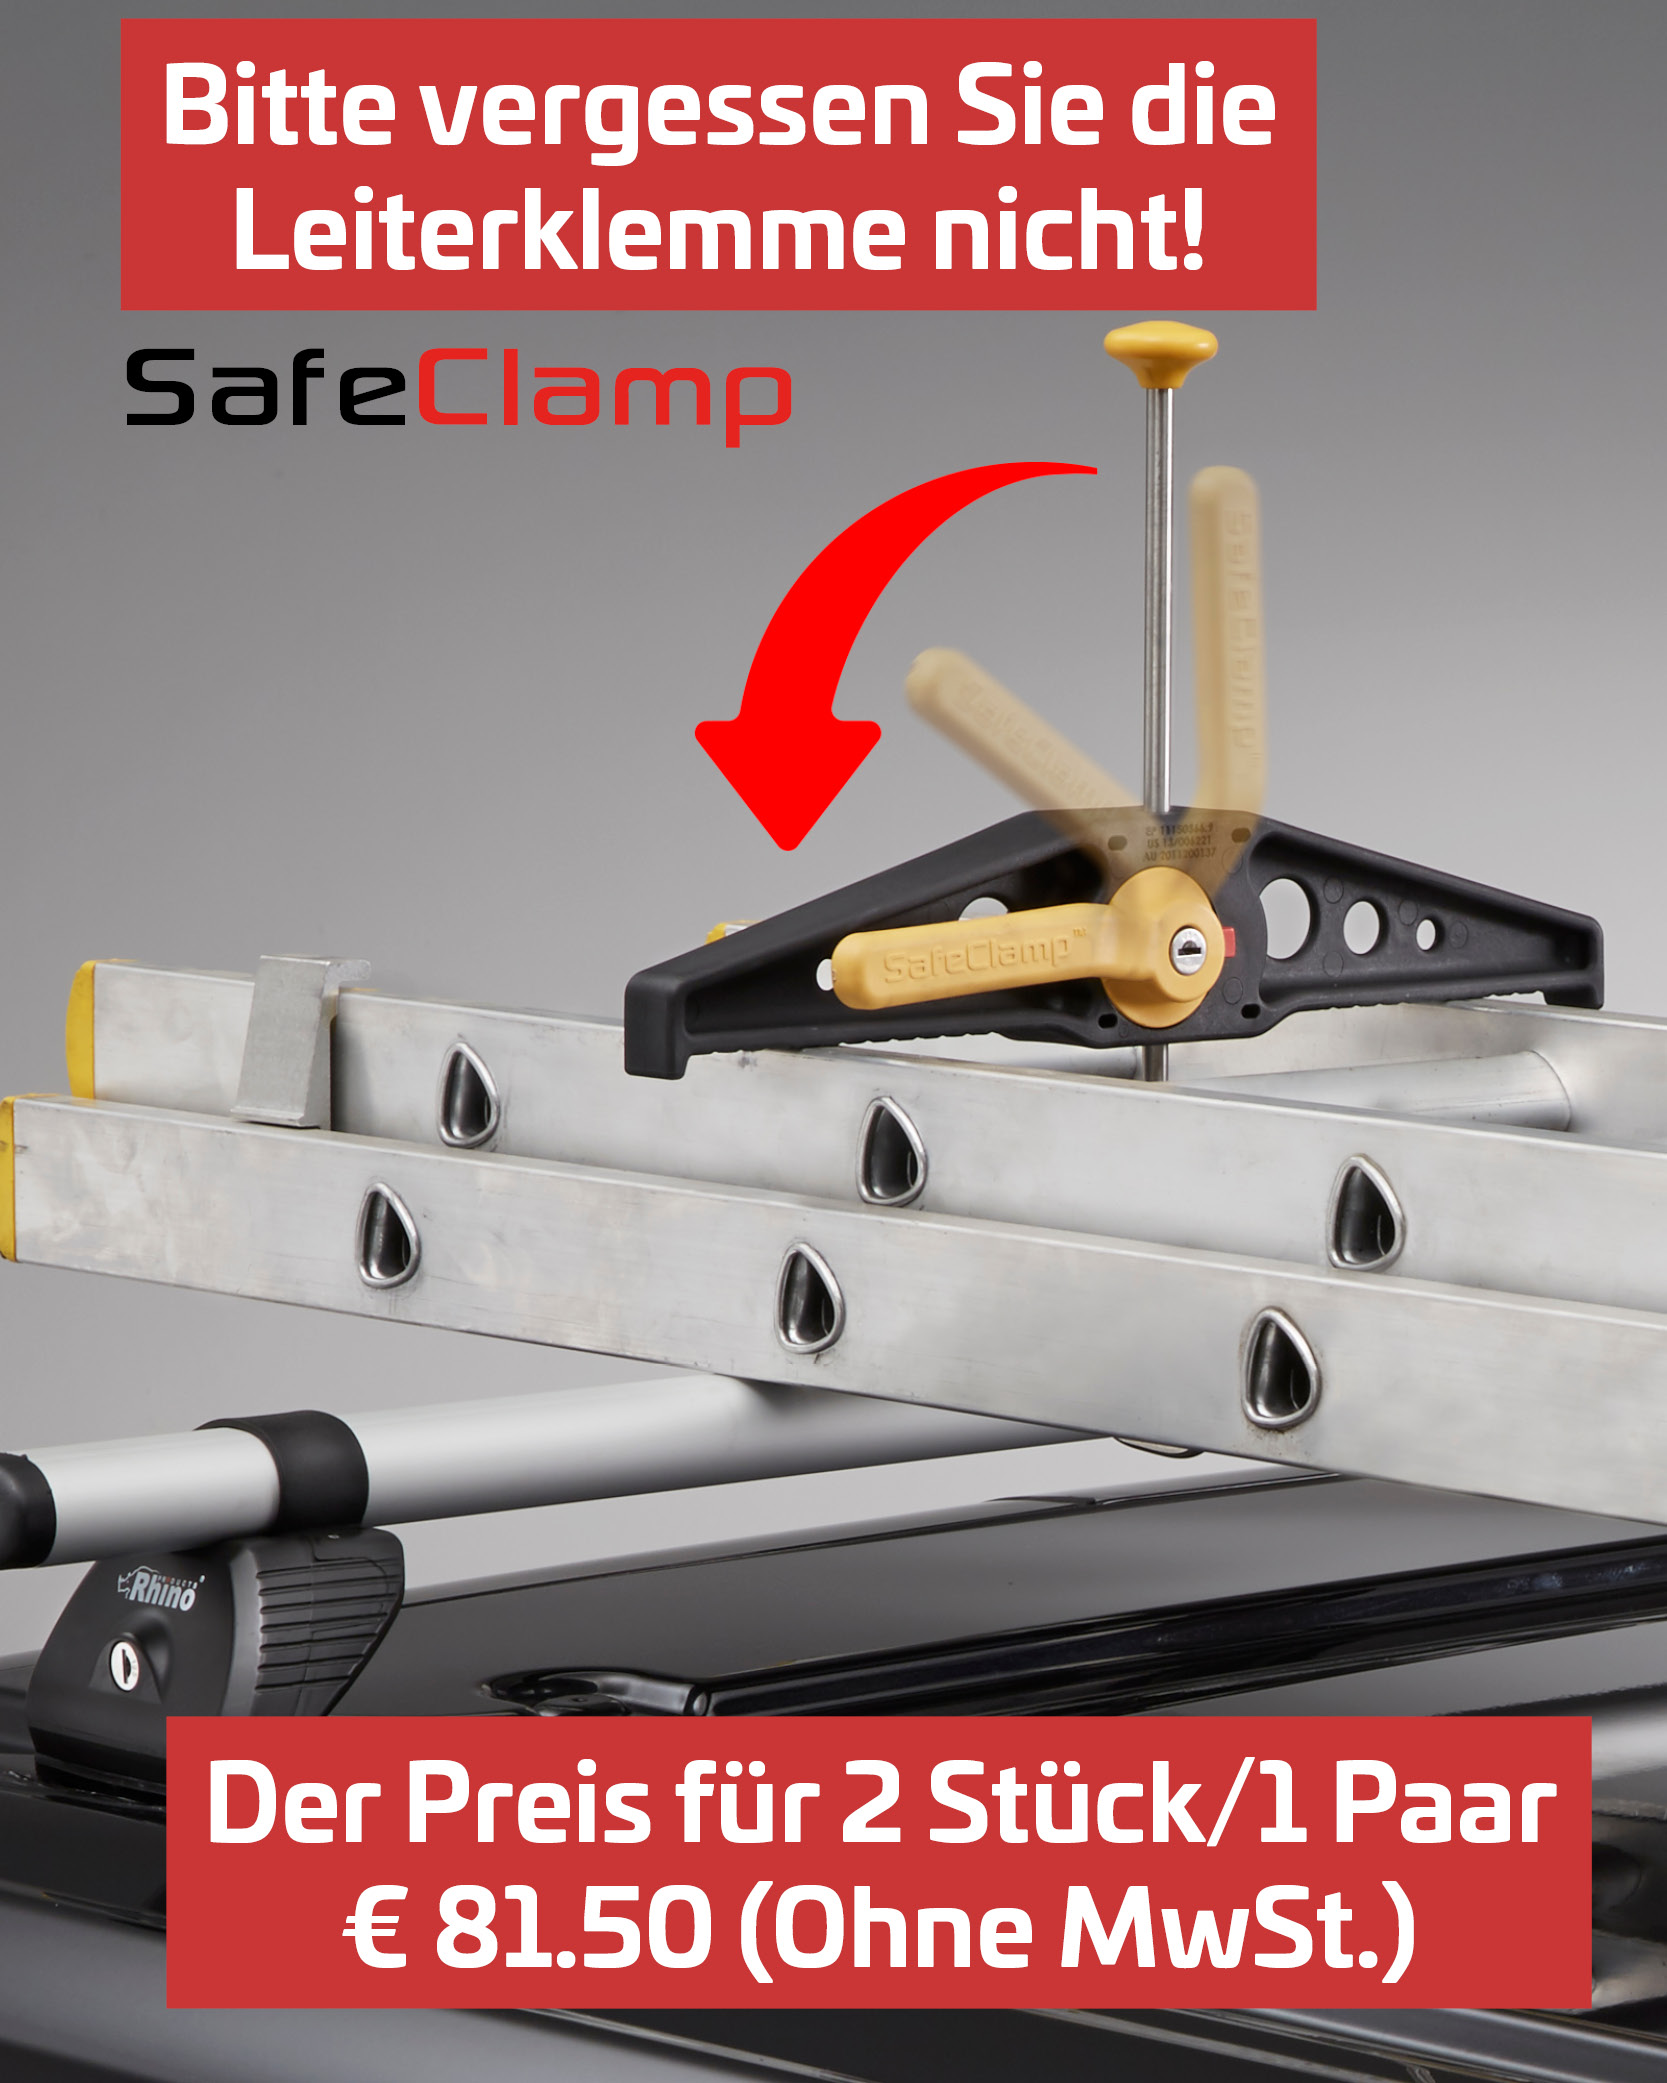 SafeClamp Leiterklemme